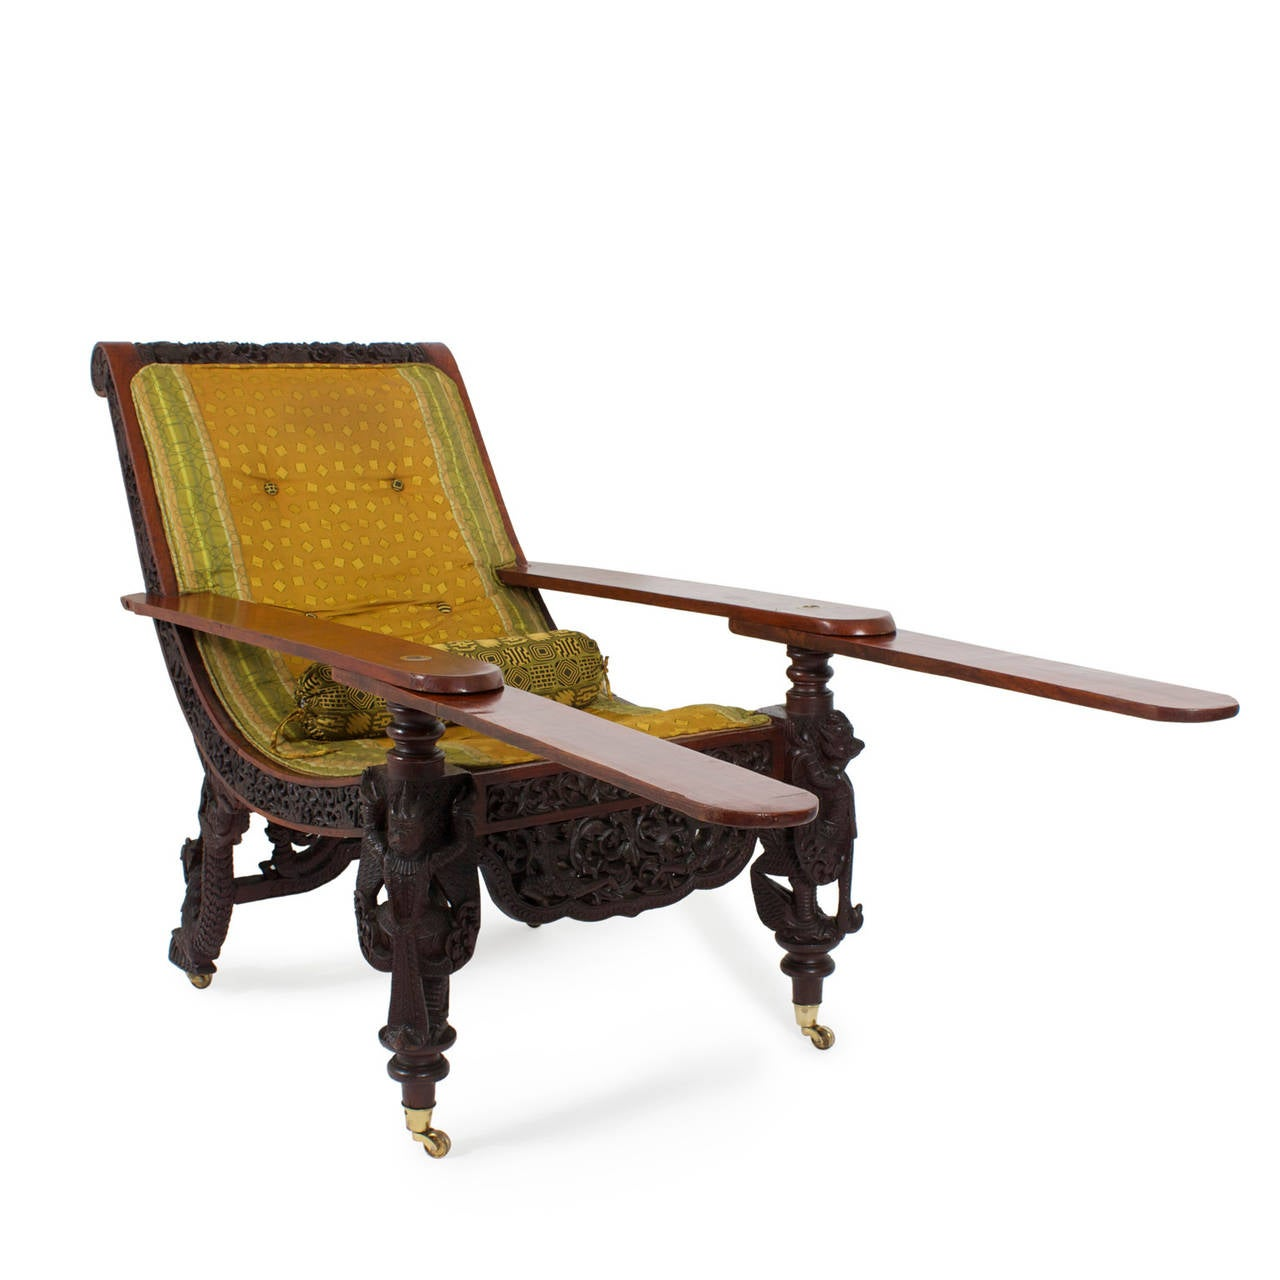 chair with leg rest india ergonomic store 19th century anglo indian carved plantation or planters for a rare british colonial expertly tropical hard